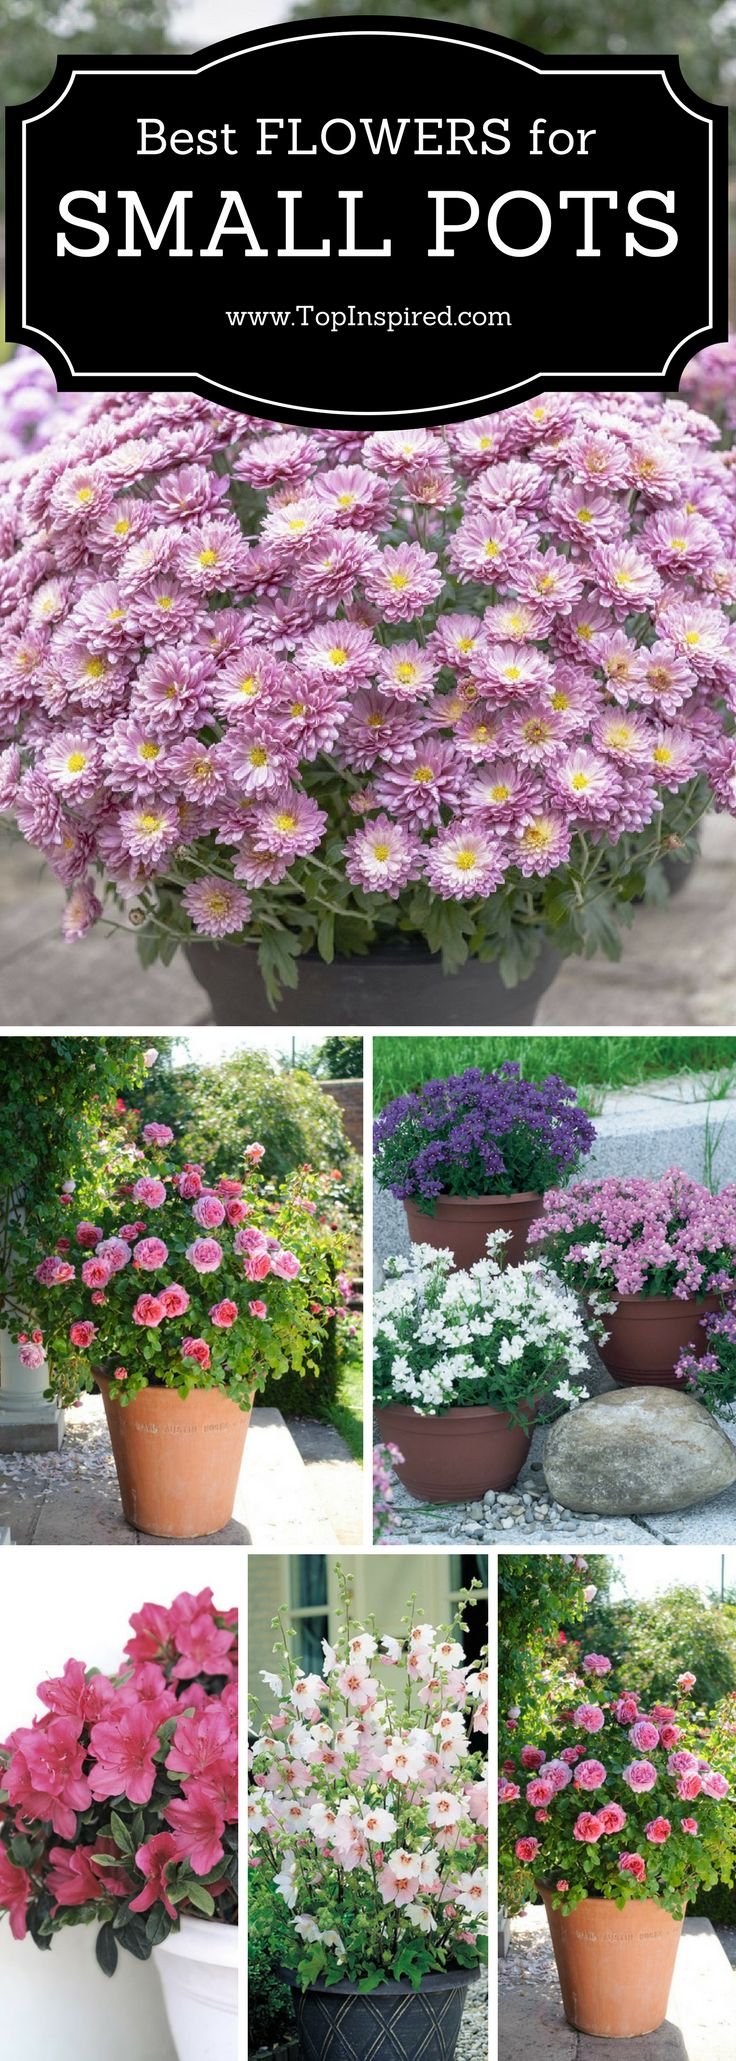 Best 25 Small potted plants ideas on Pinterest Plants indoor